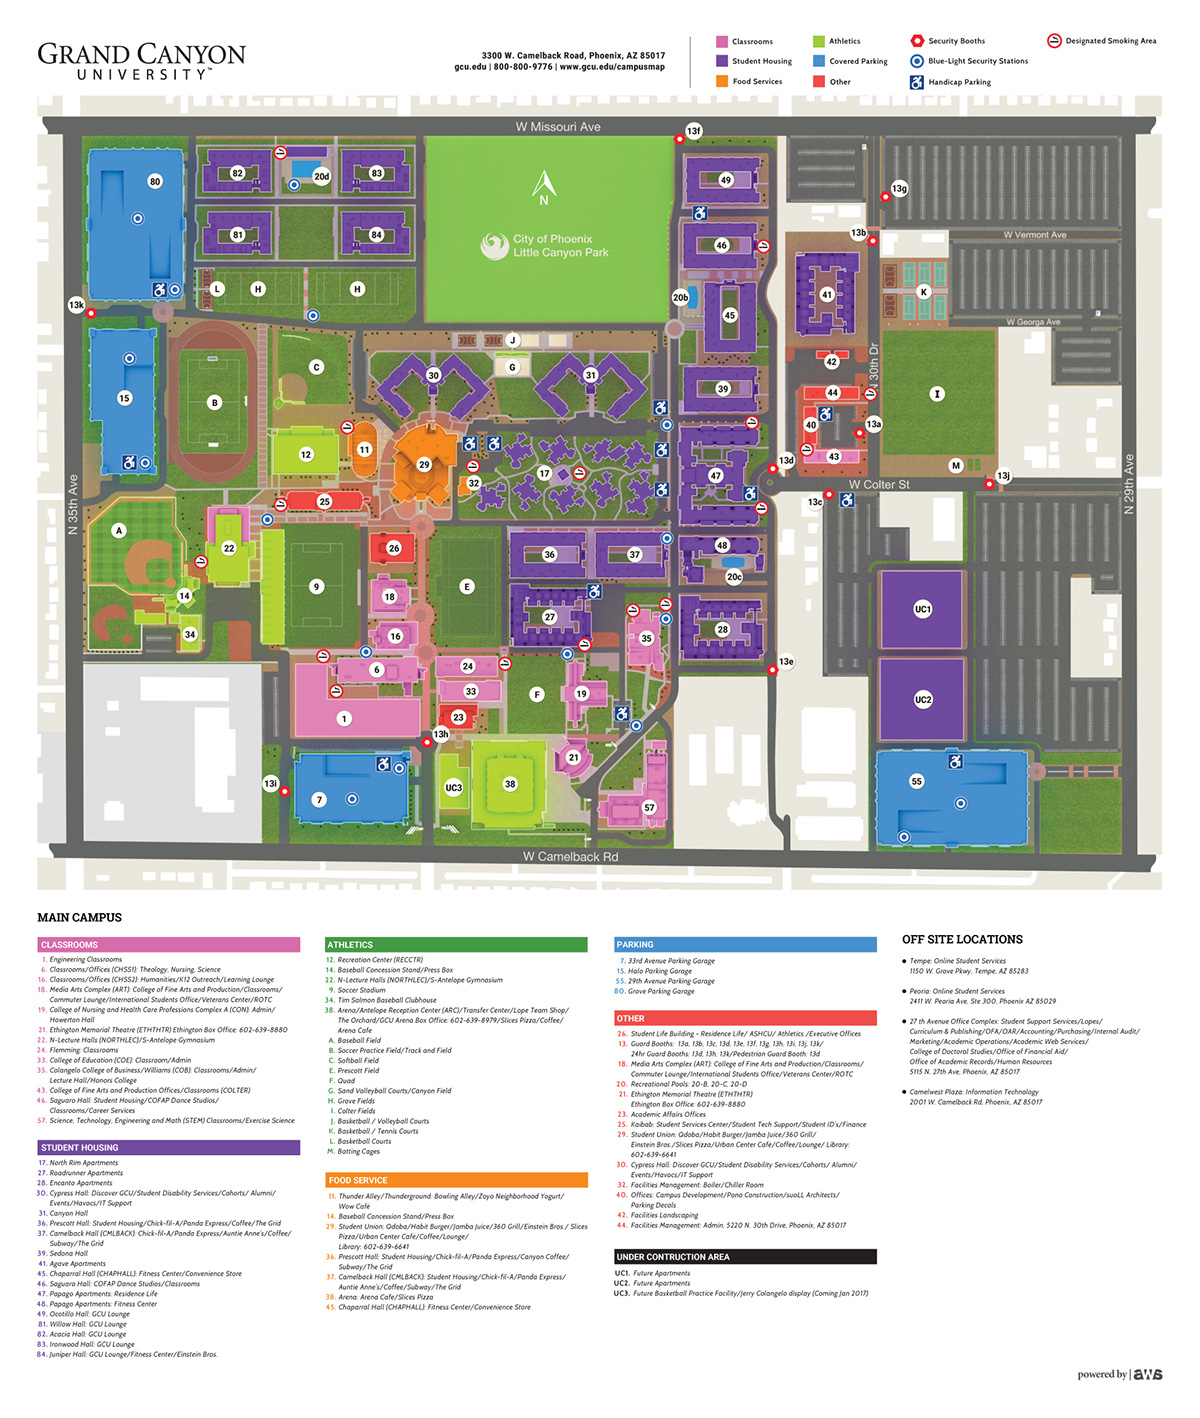 Gcu Campus Map Kingjaap